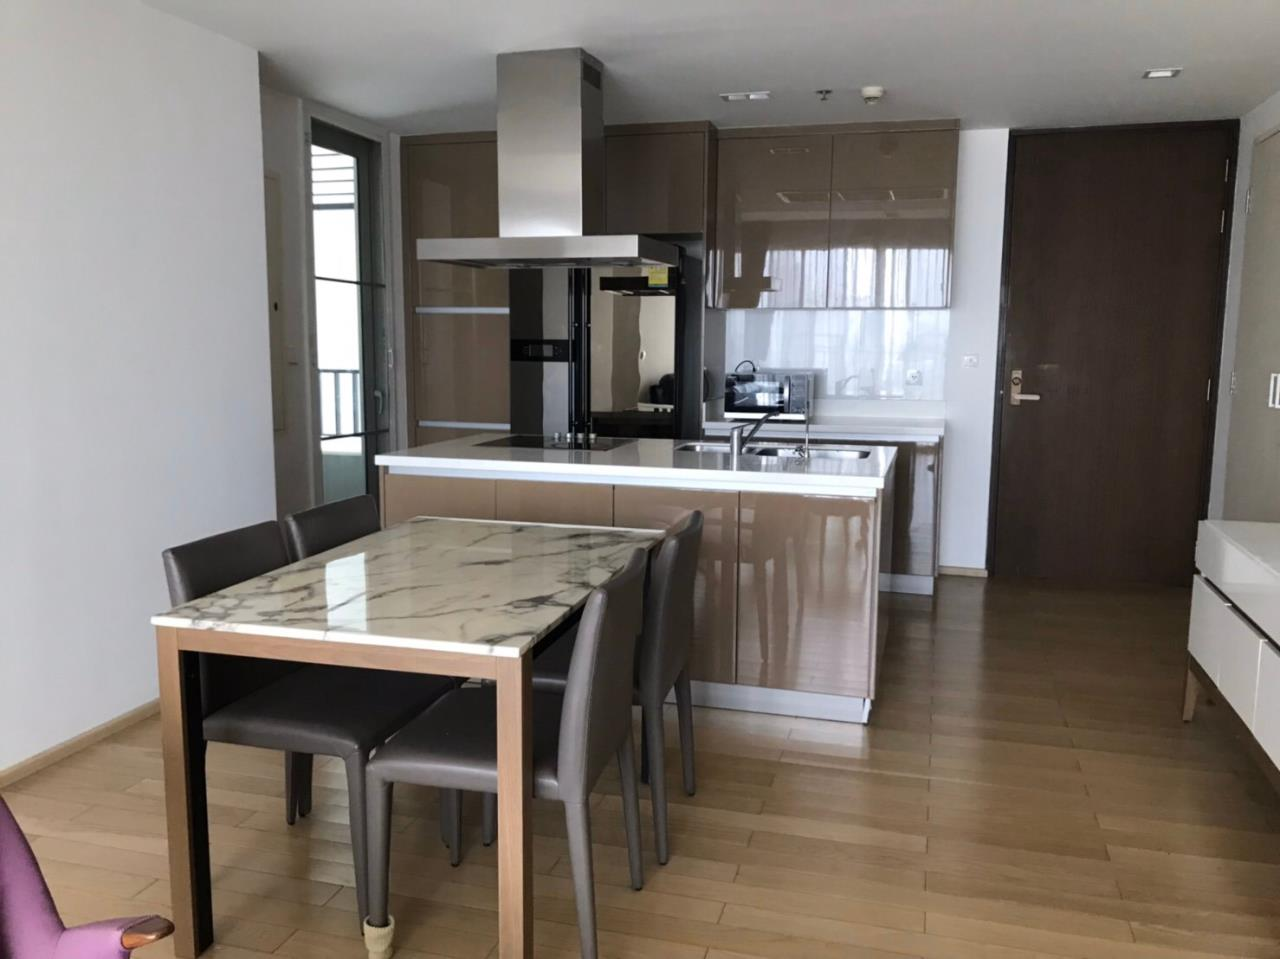 Bestbkkcondos Agency's Thonglor - 100sqm - For Rent : 55K ฿ / Month - 3 Bedrooms 2